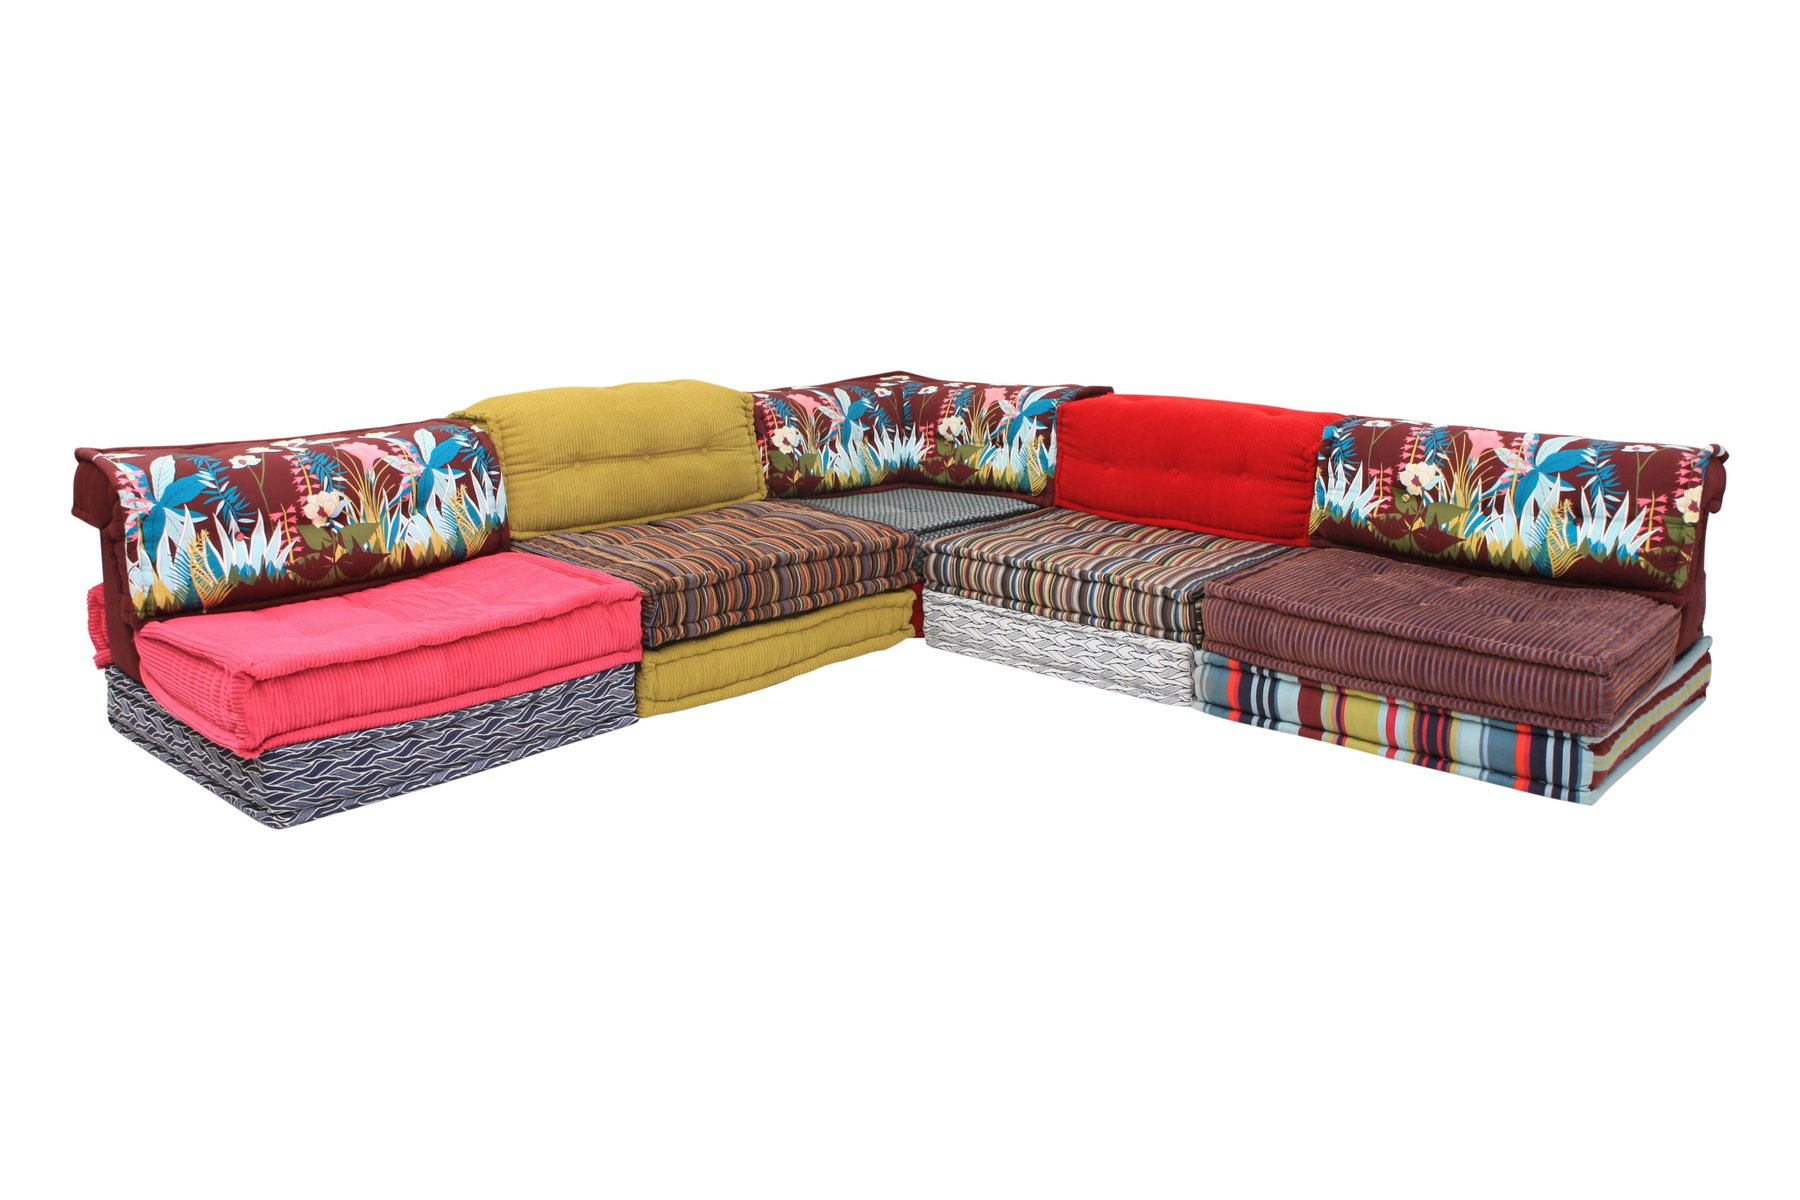 Mah jong modular sectional corner sofa by hans hopfer for roche bobois 1970s for sale at pamono - Mah jong divano ...